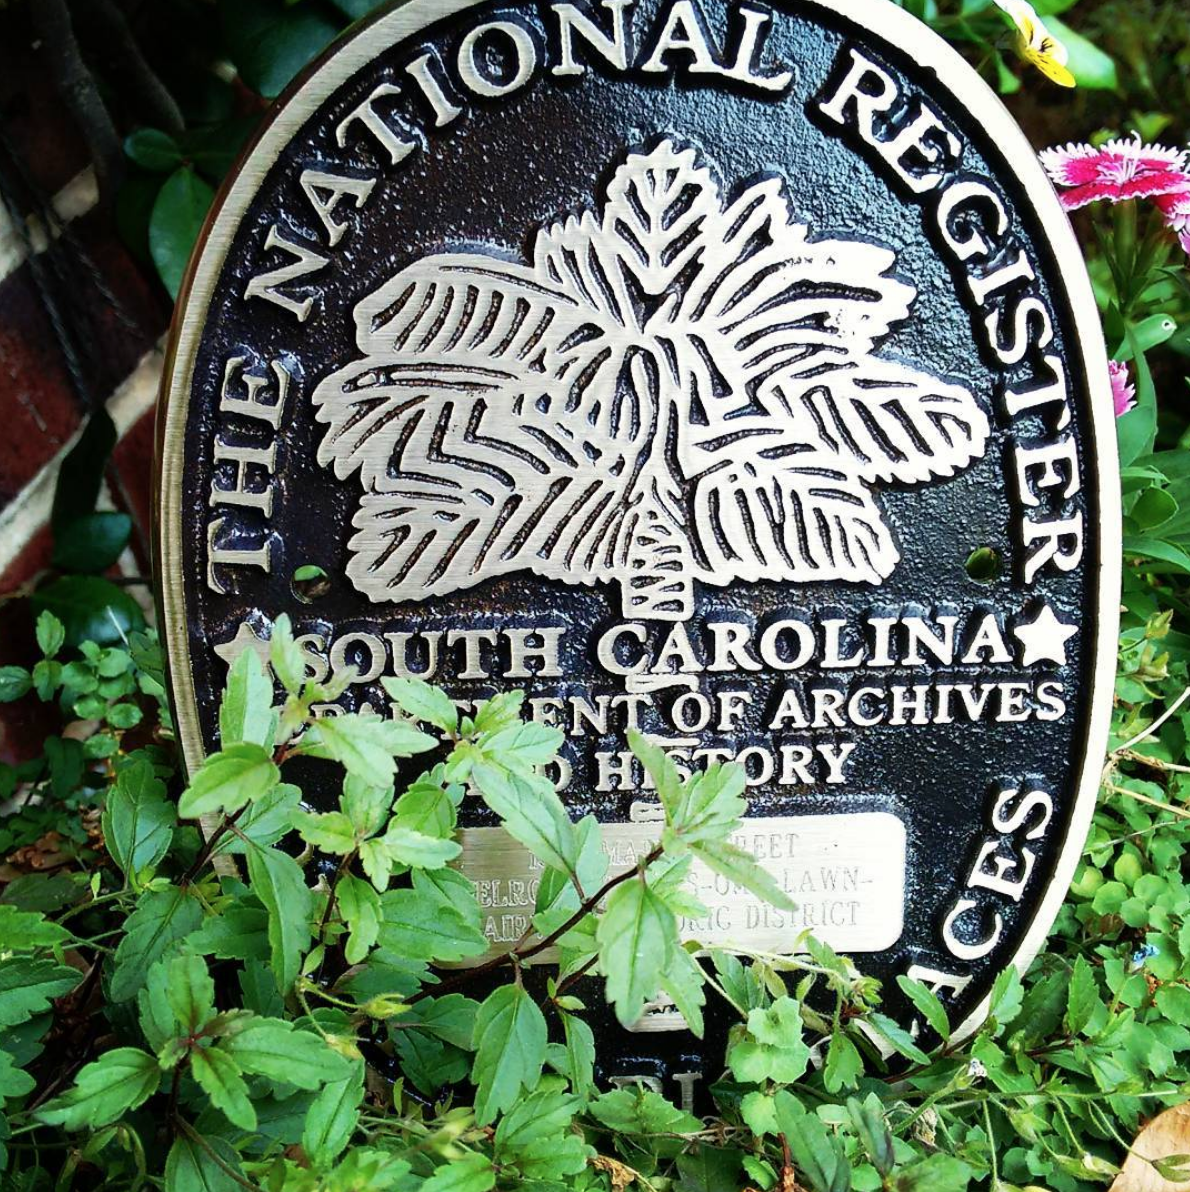 Order your plaque! - To order a National Register of Historic Places plaque for your house, first consult the NRHP document to verify that yours is a contributing property, then submit this form to the South Carolina Department of Archives and History. The official name of the property will be your street address and